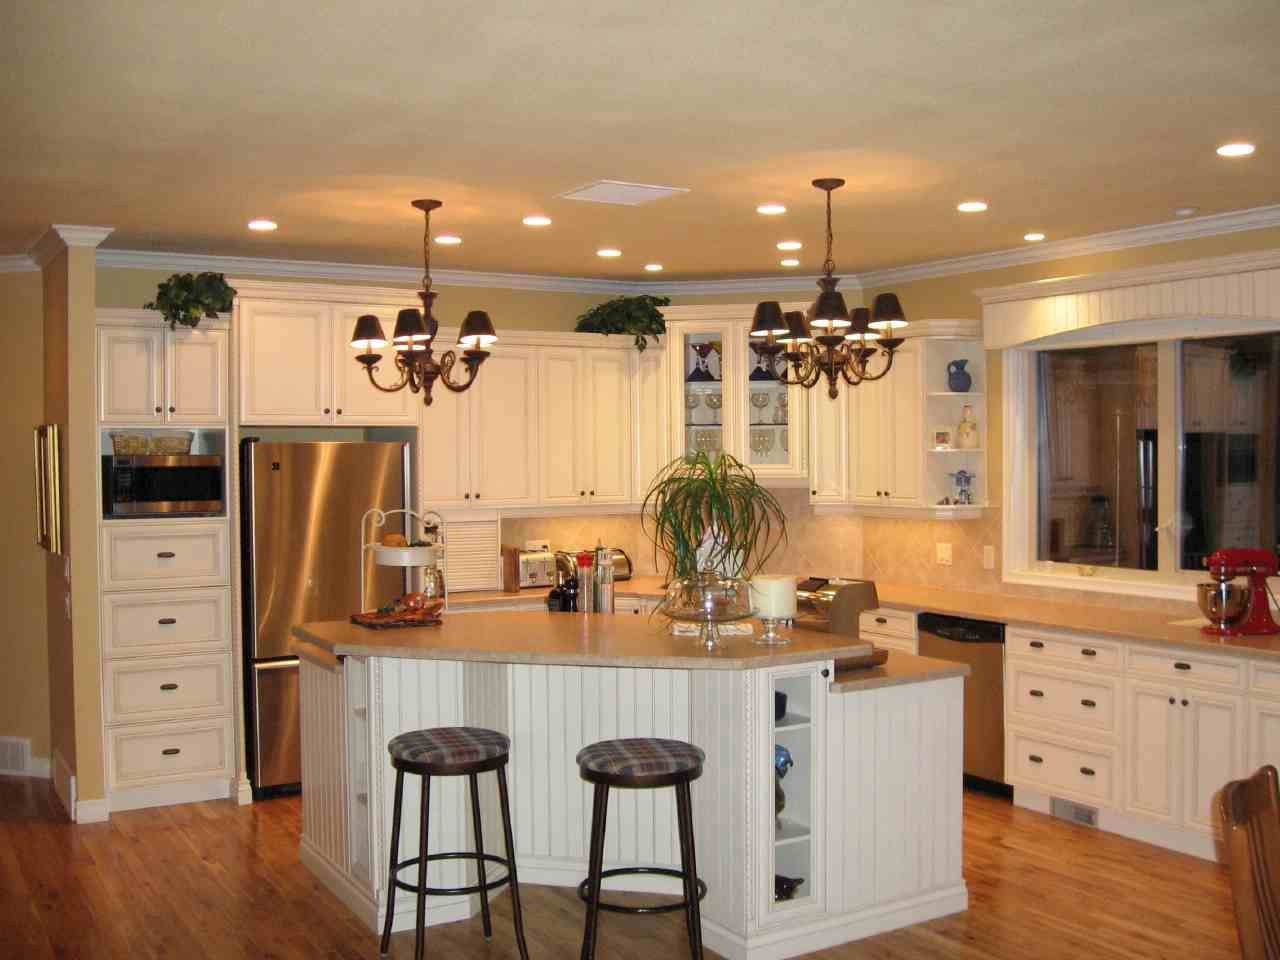 l shaped kitchen with tall cabinets google search kitchen design small kitchen remodel on l kitchen remodel id=24813